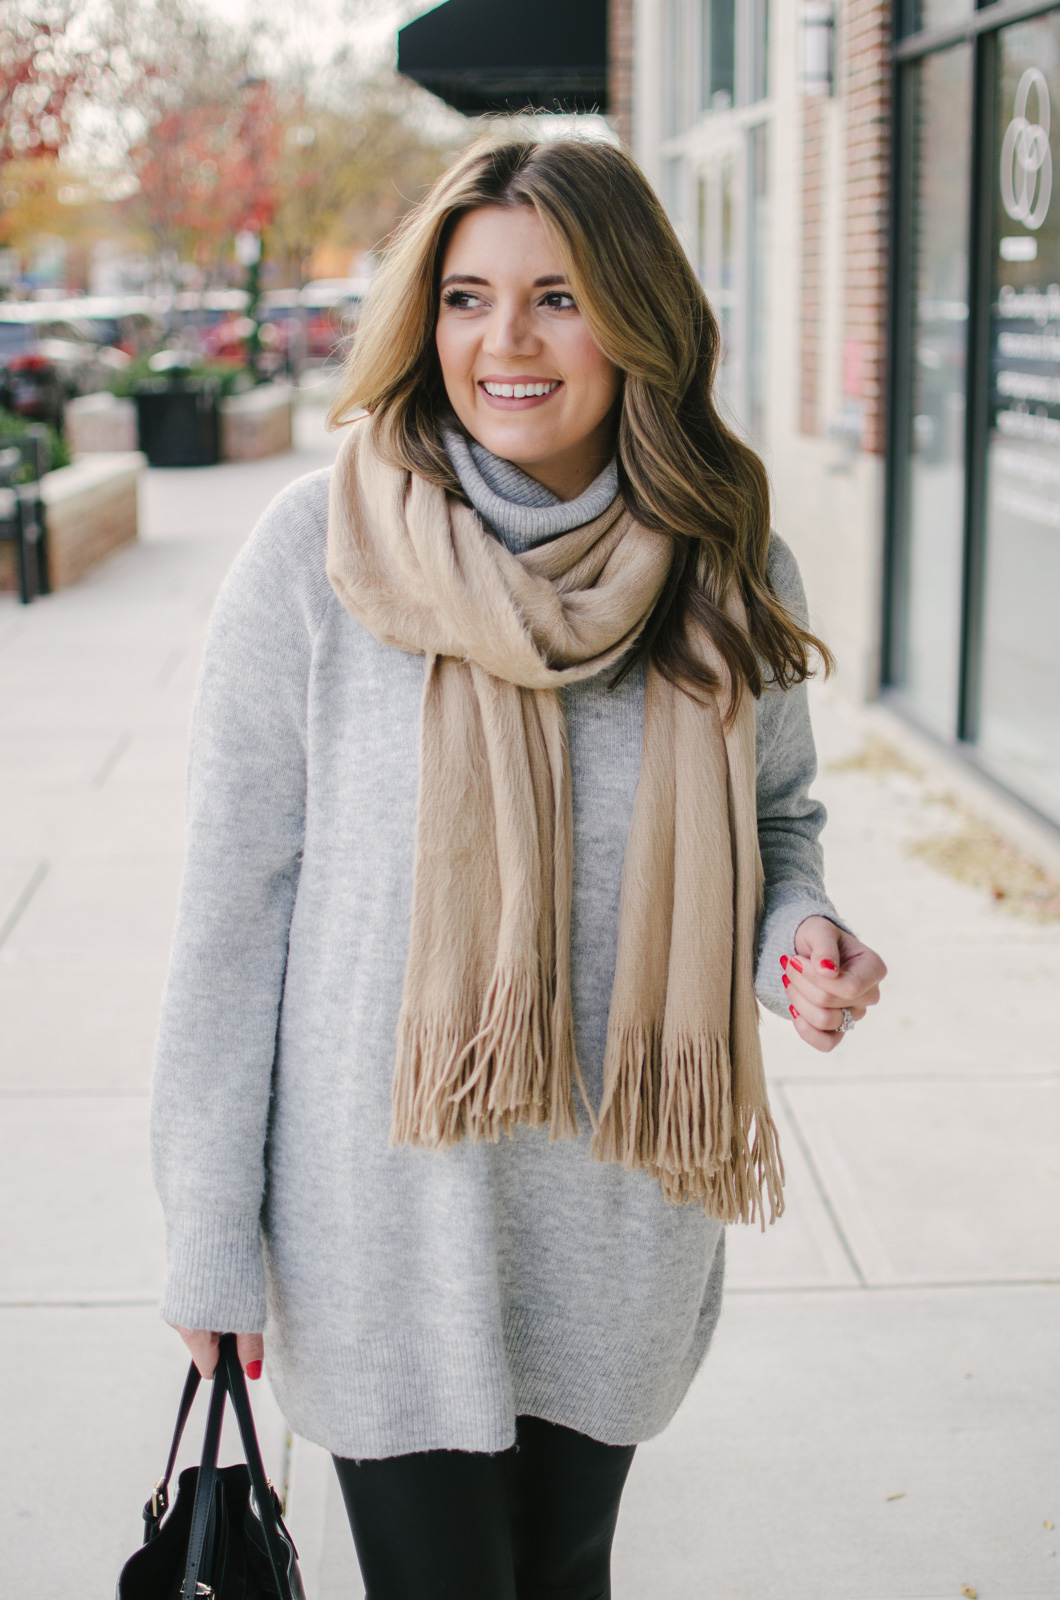 winter leggings outfit - the best long sweater for leggings | For more casual Winter outfits, click through to bylaurenm.com!